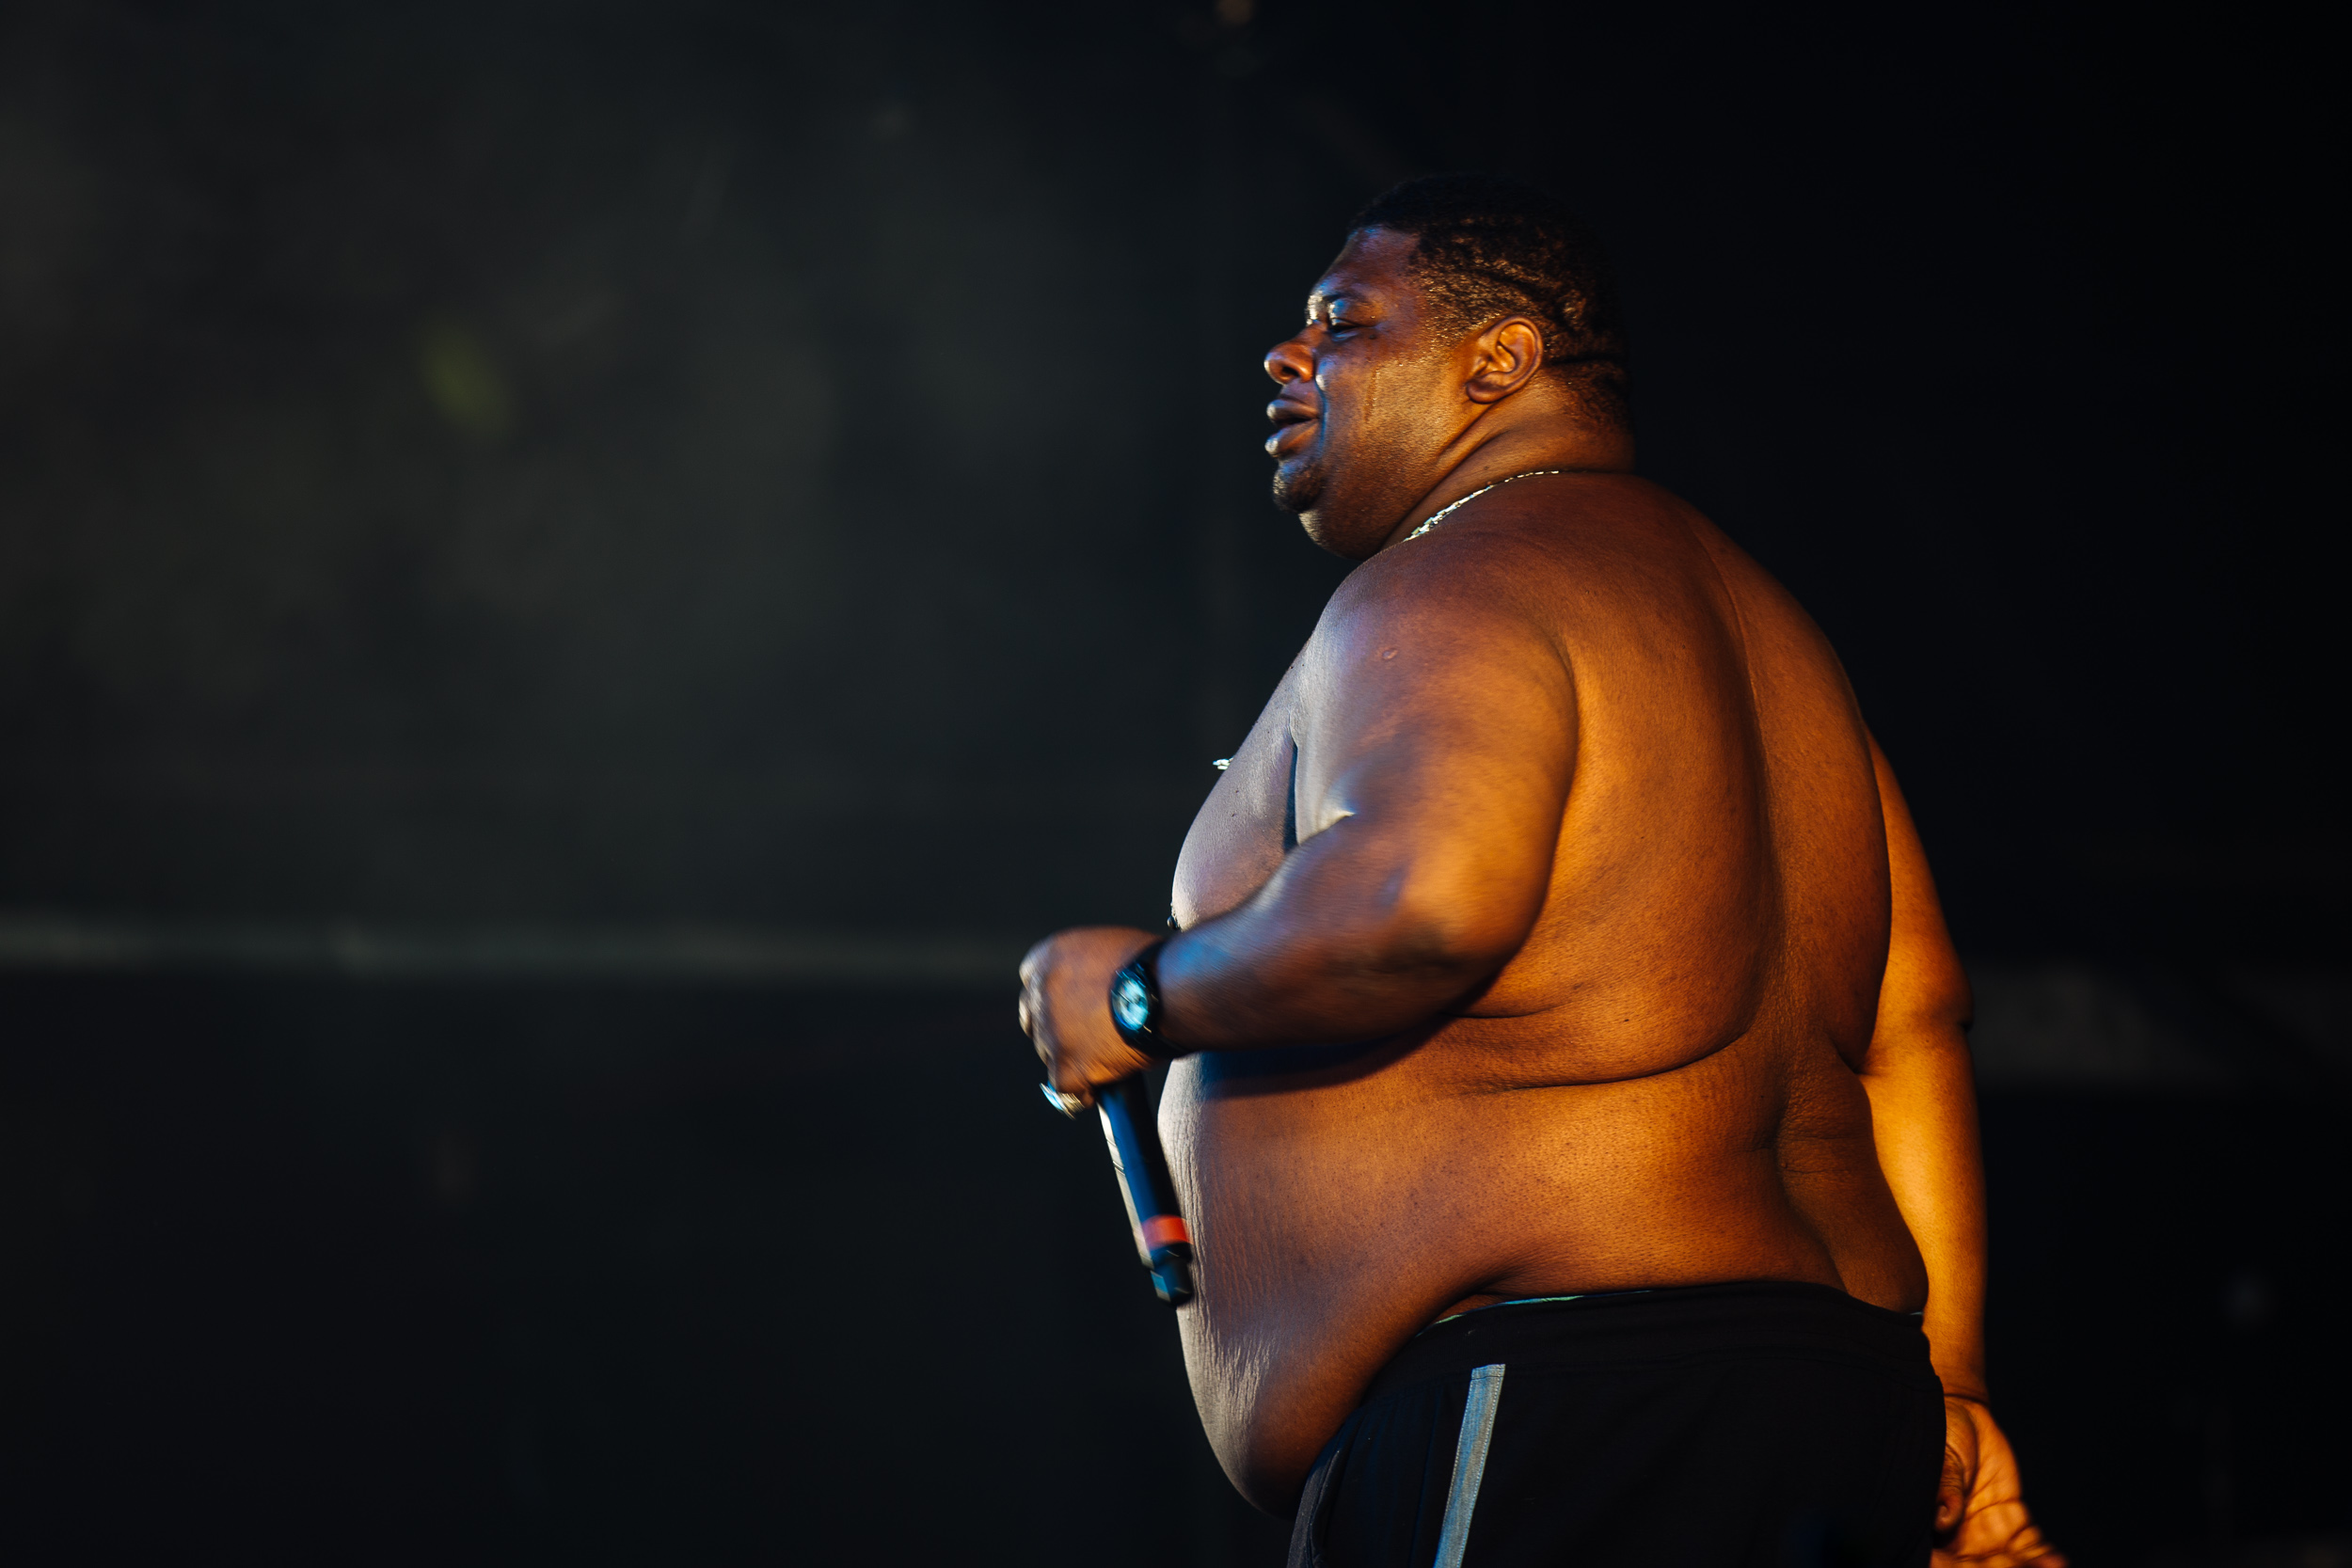 Big Narstie at Wireless Festival by Adam Elmakias